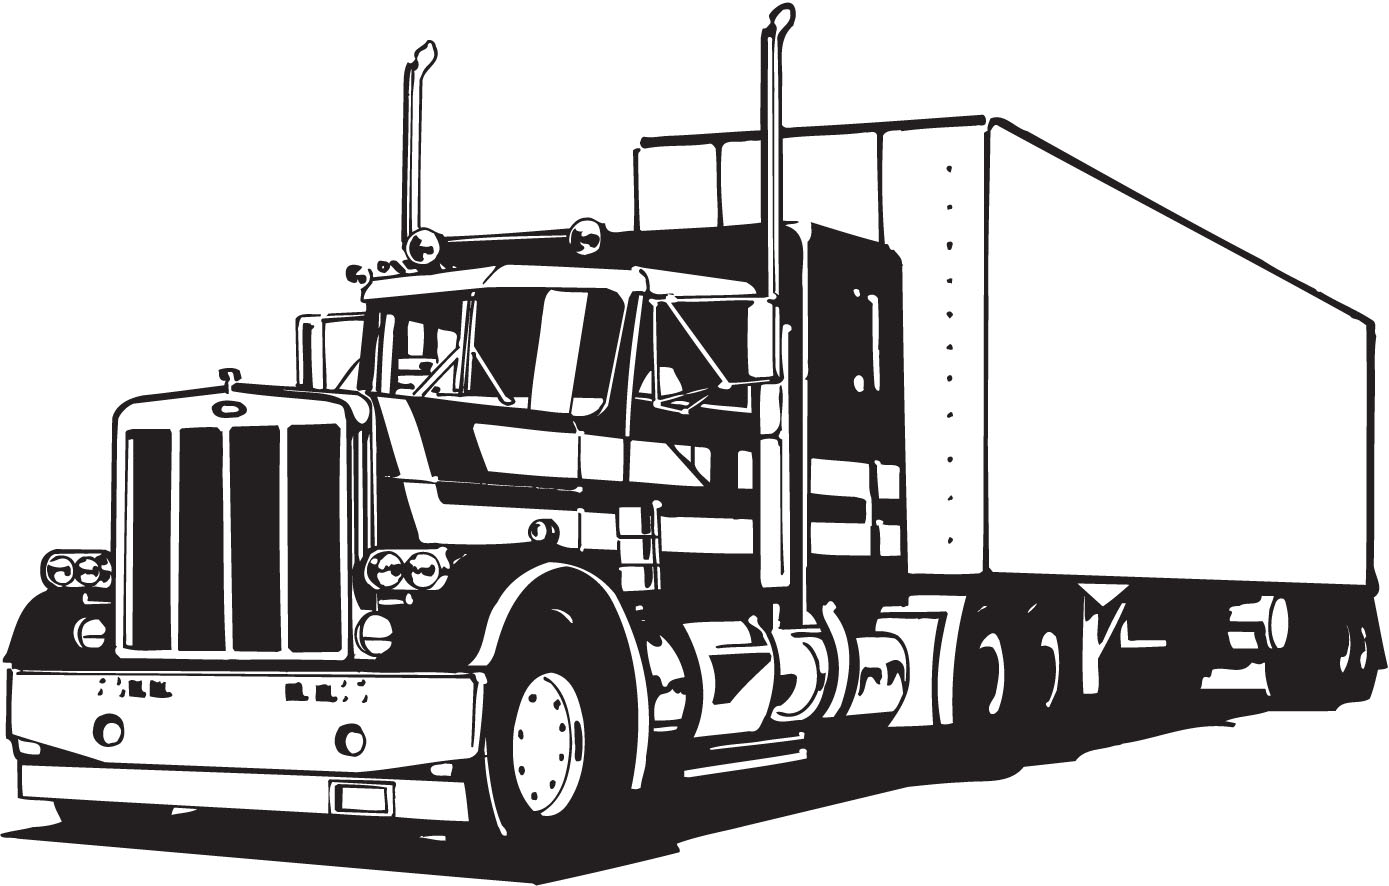 Line Art Truck : Vectorian art truck lineart vectorfree download free